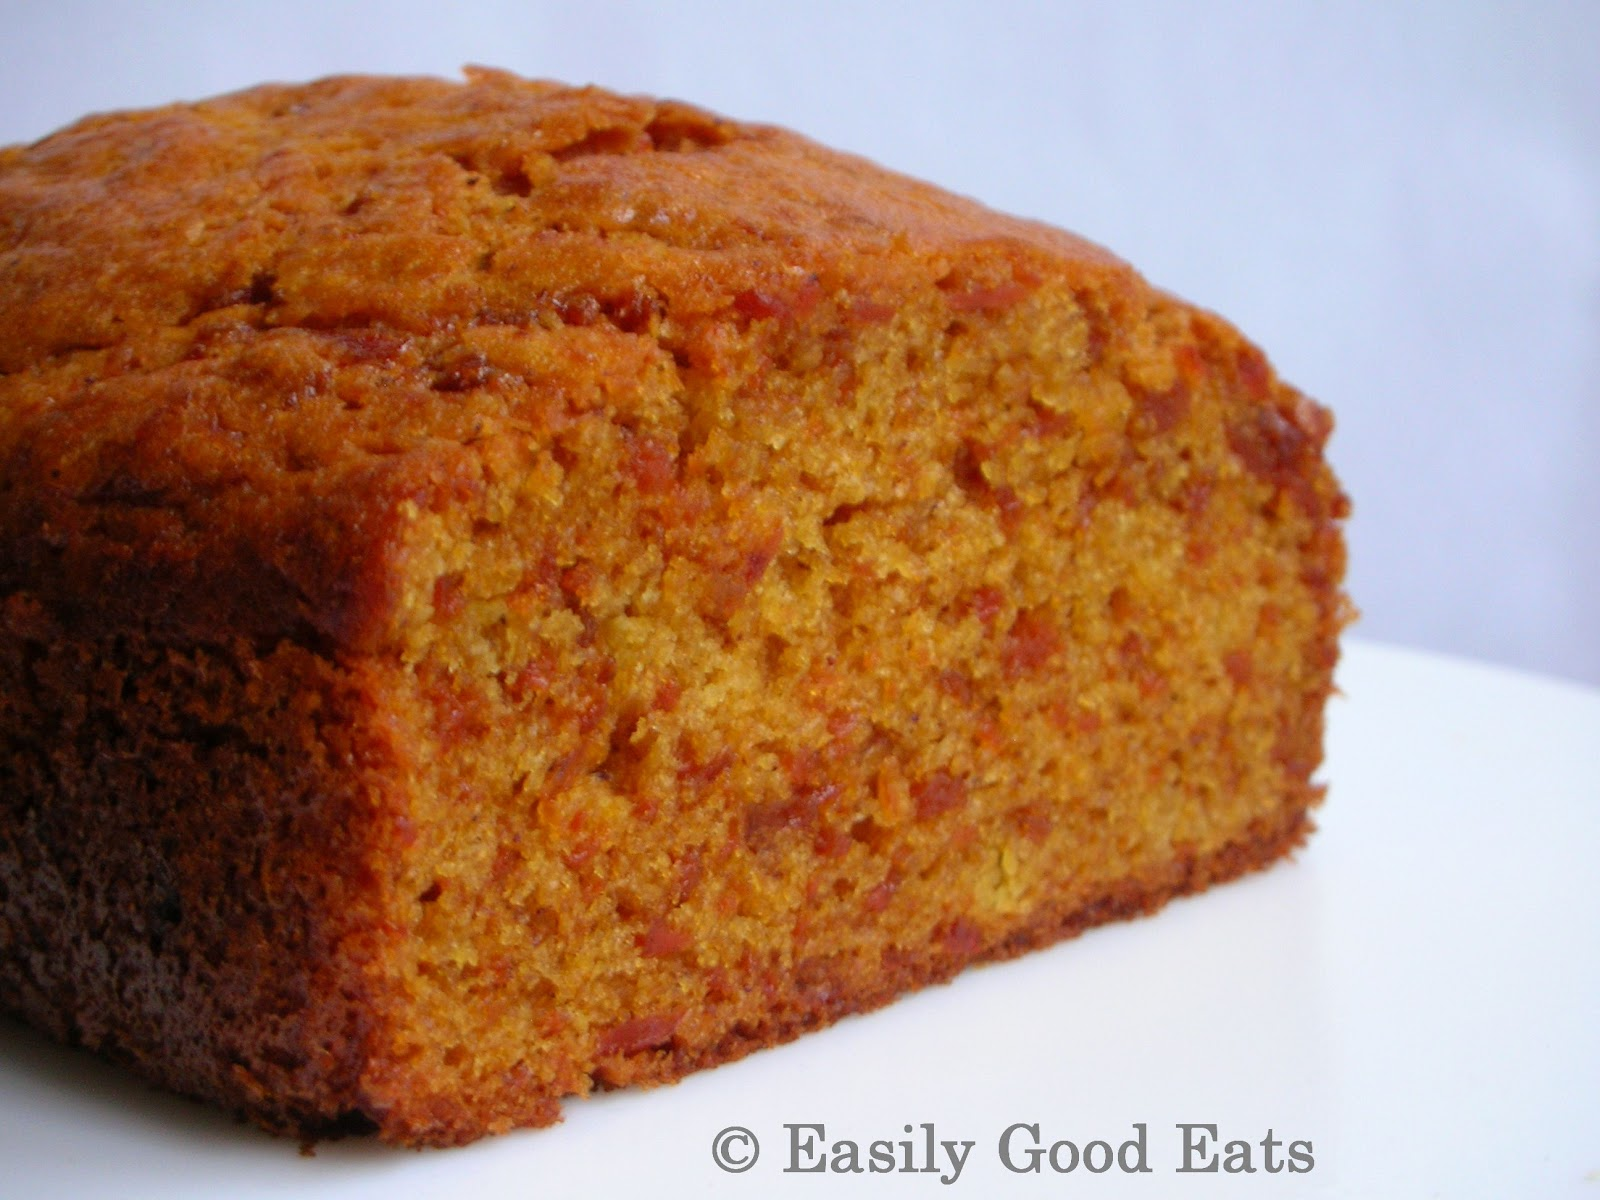 Carrot Cake Recipe Without Nuts Or Pineapple